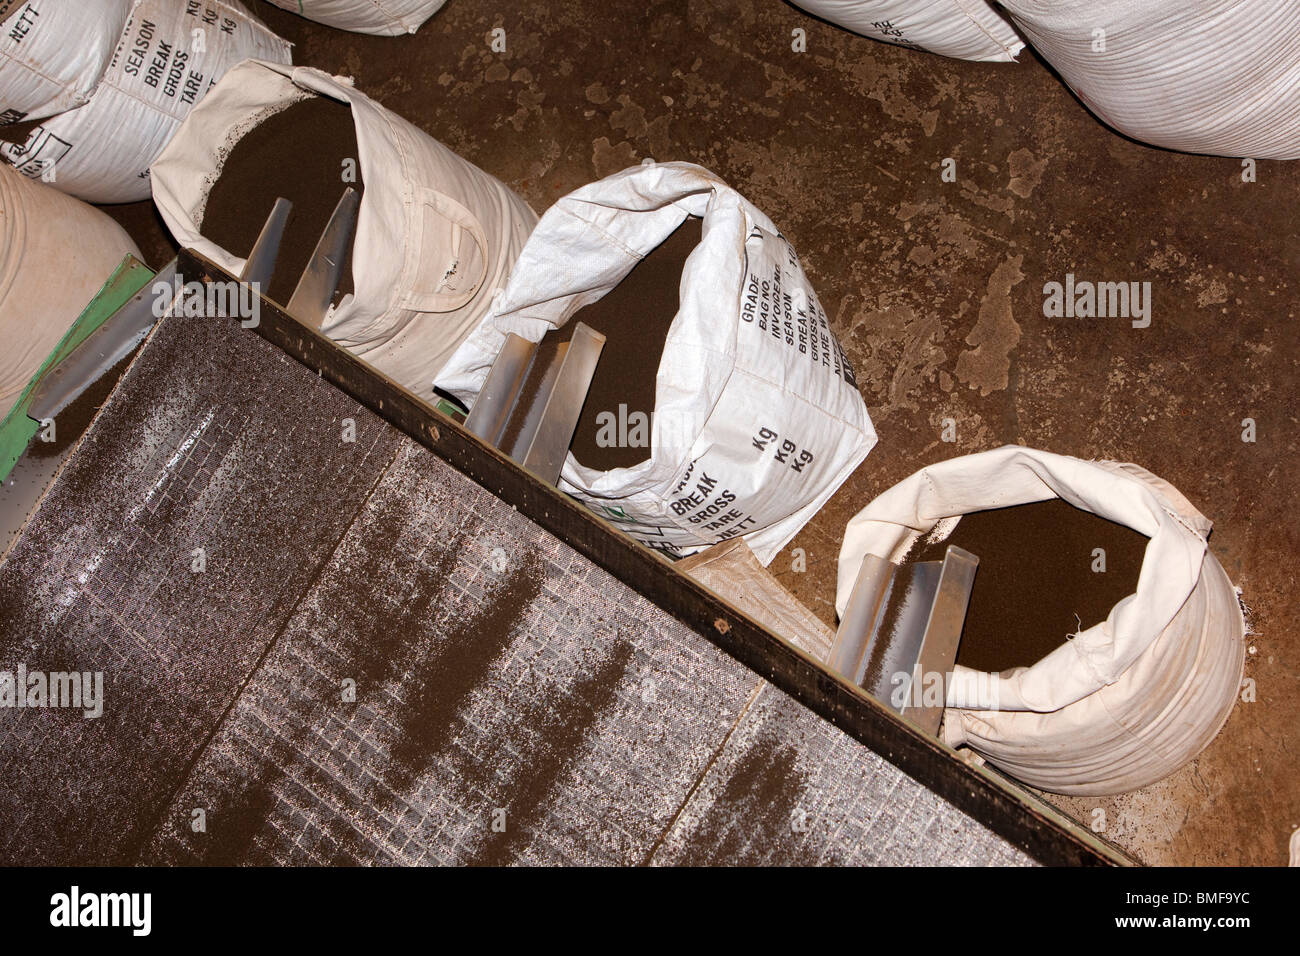 India, Tamil Nadu, Udhagamandalam (Ooty), tea factory, machine grading leaves into different sized leaves - Stock Image